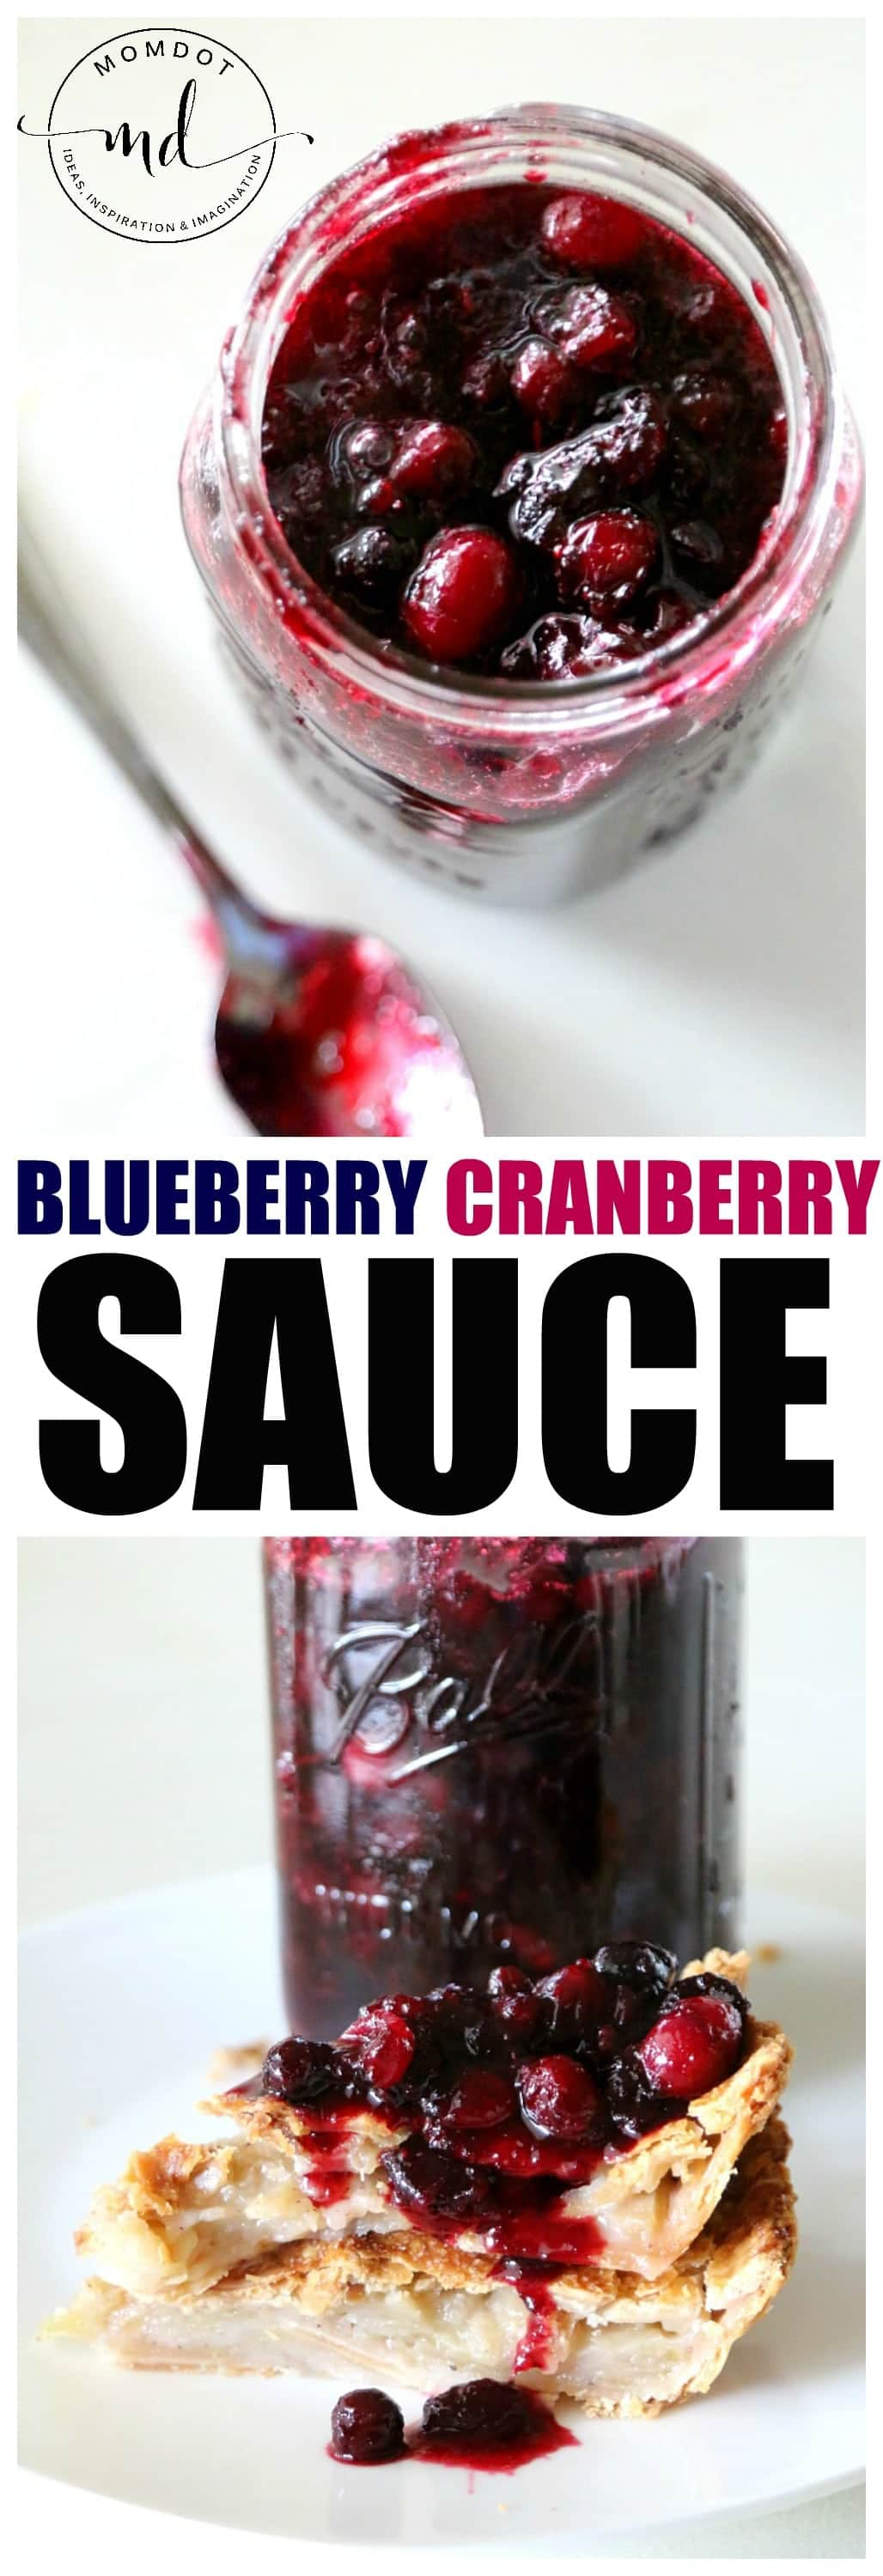 Blueberry Cranberry Sauce Recipe, a perfectly delicious WOW side dish that doubles as a pie topping